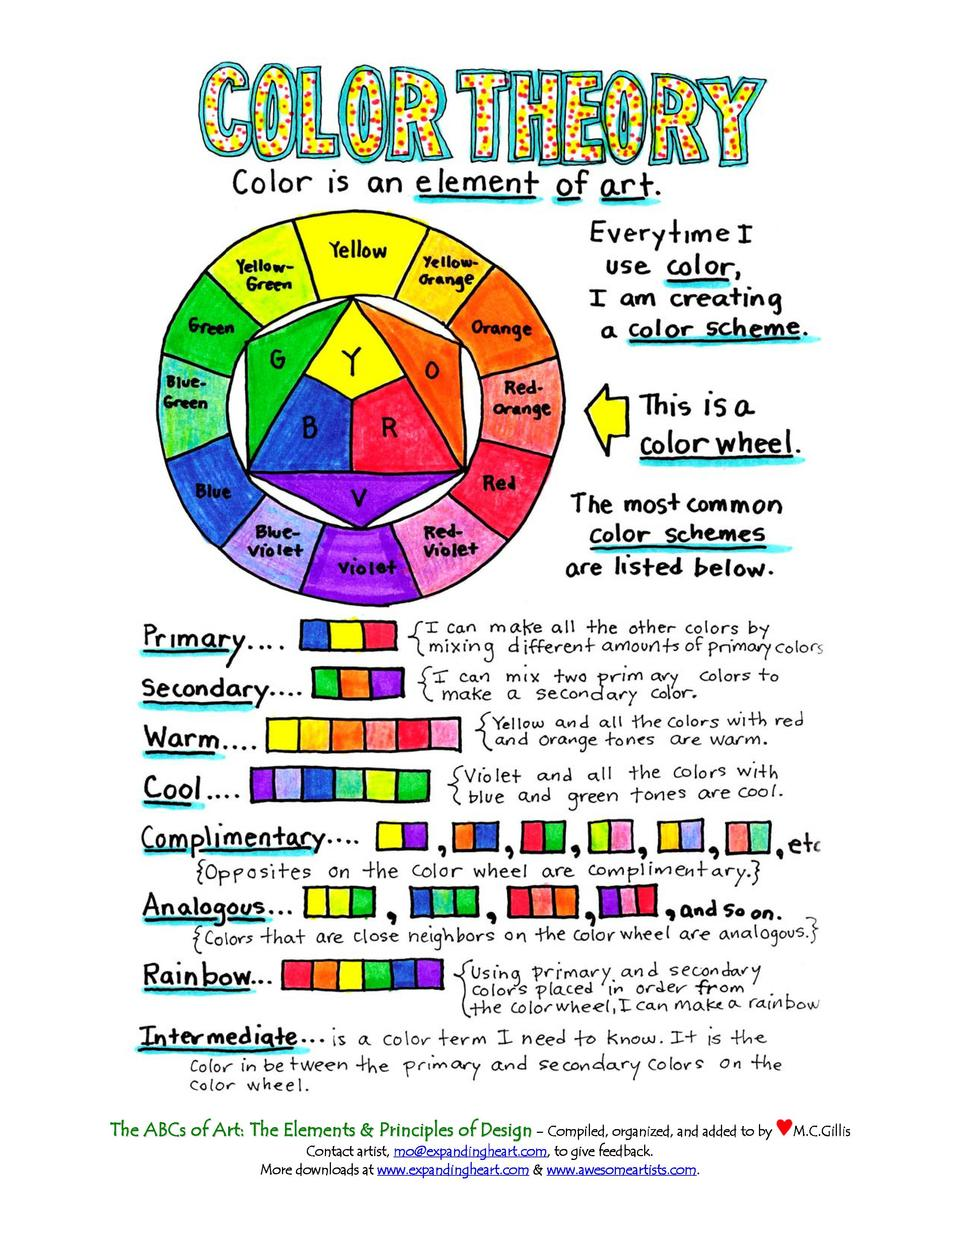 Give The Elements Of Art : Abc of art simplebooklet